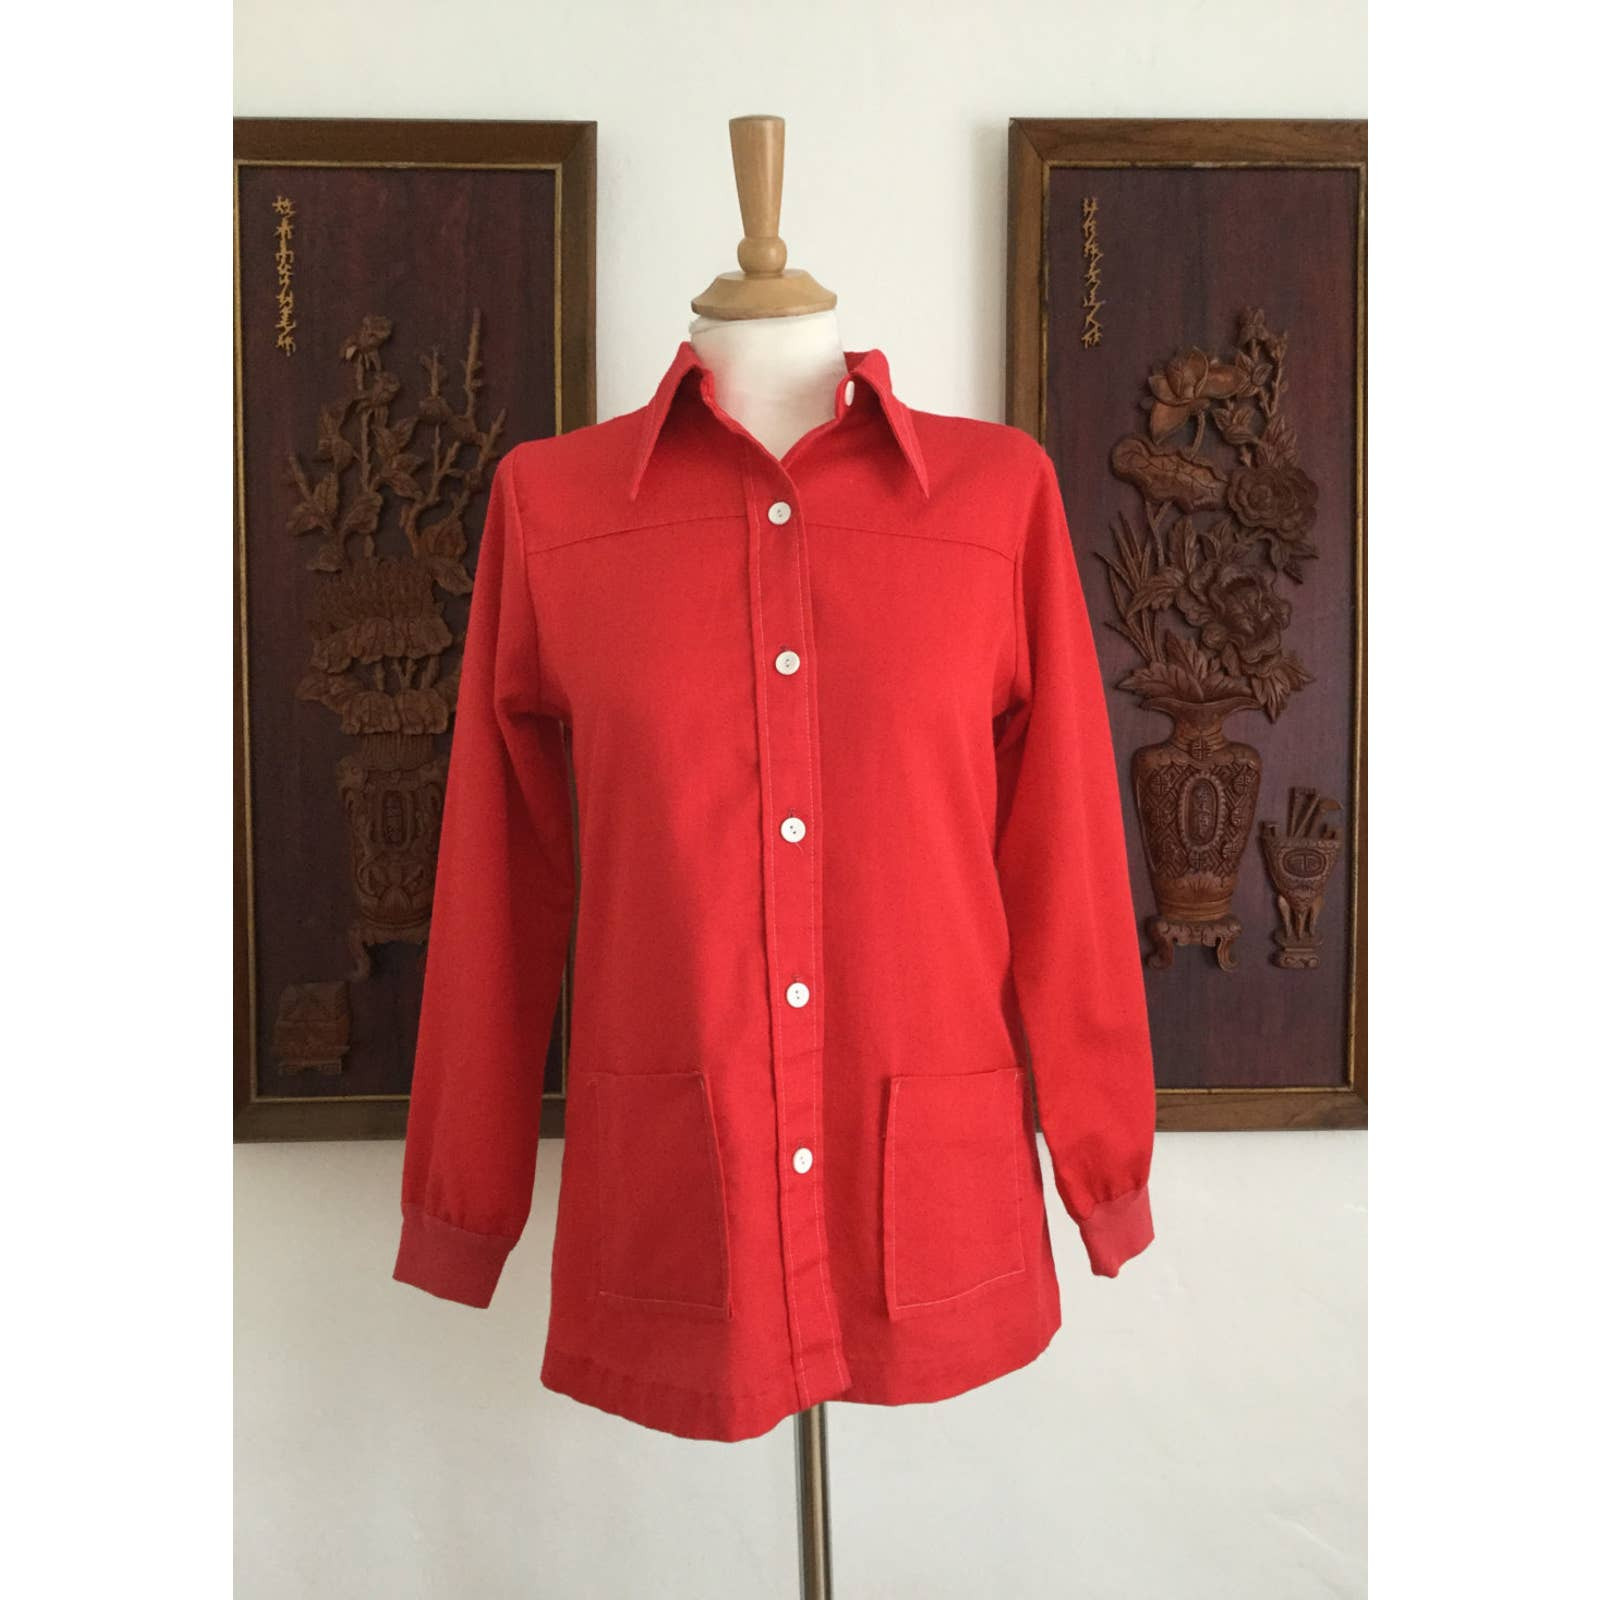 Product Image 1 - Vintage red long sleeve blouse.